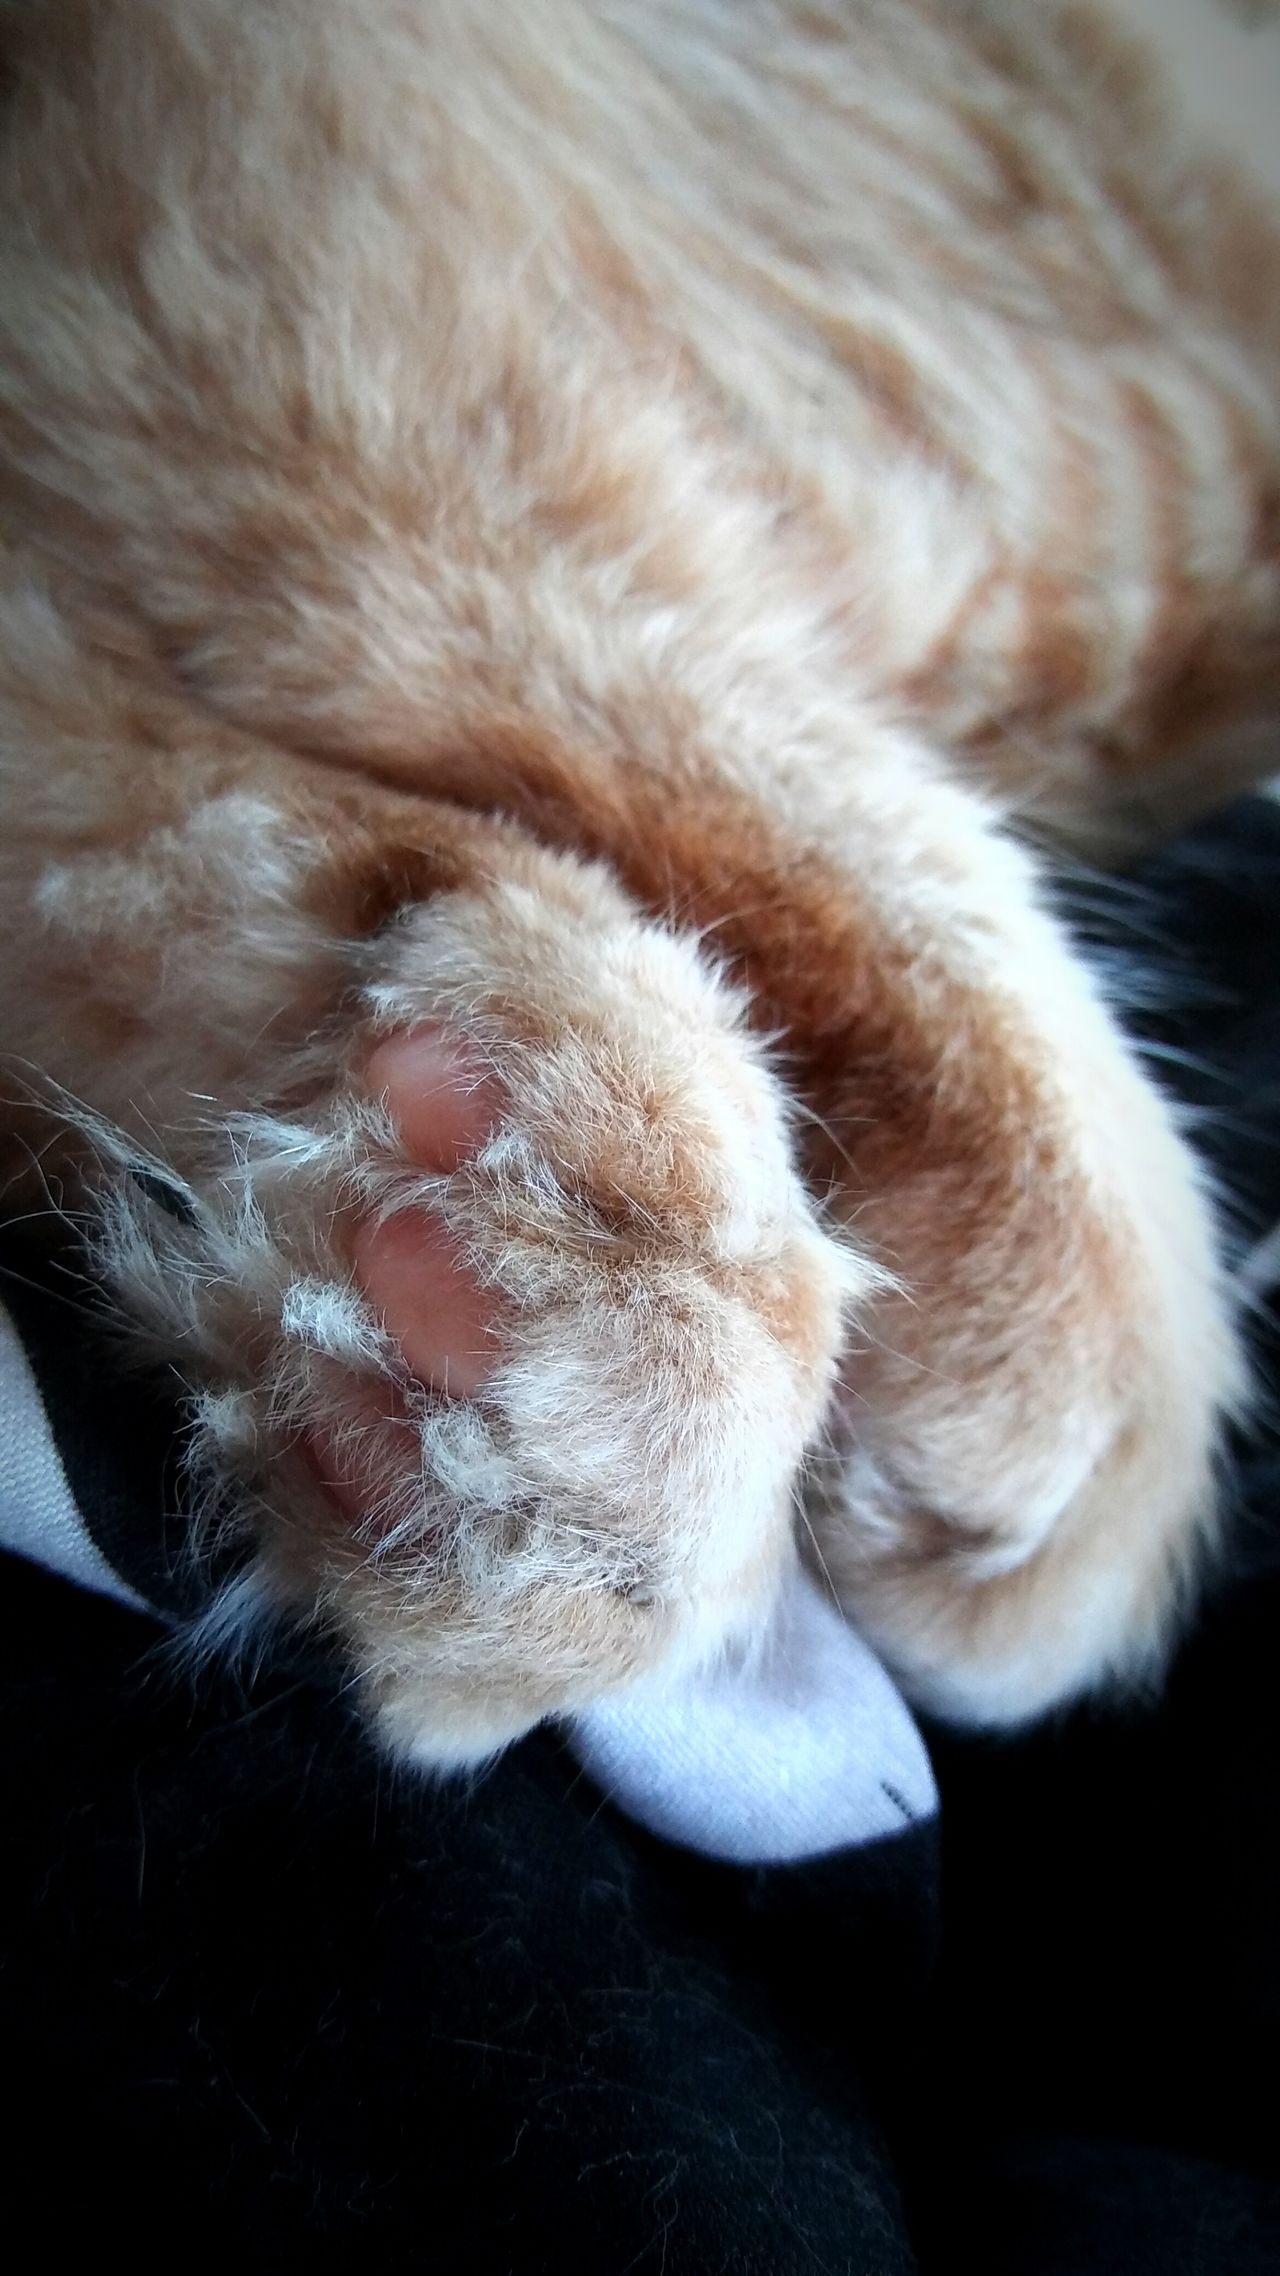 Kitty paws n baby toe beans🐾🐾🐾💕💕💕😘😘 Hanging Out Check This Out Hello World Hi! Relaxing Precious Little Moments Catstarcat Pawsome Animal Photography Catsoftheworld Paws And Purrs ❤️🔥❤️ Catsofeyeem Catlovers Animals Loveallanimals Gingercatsofinstagram Gingersrule Bayareaphotography Bay Area Cat Snoozin